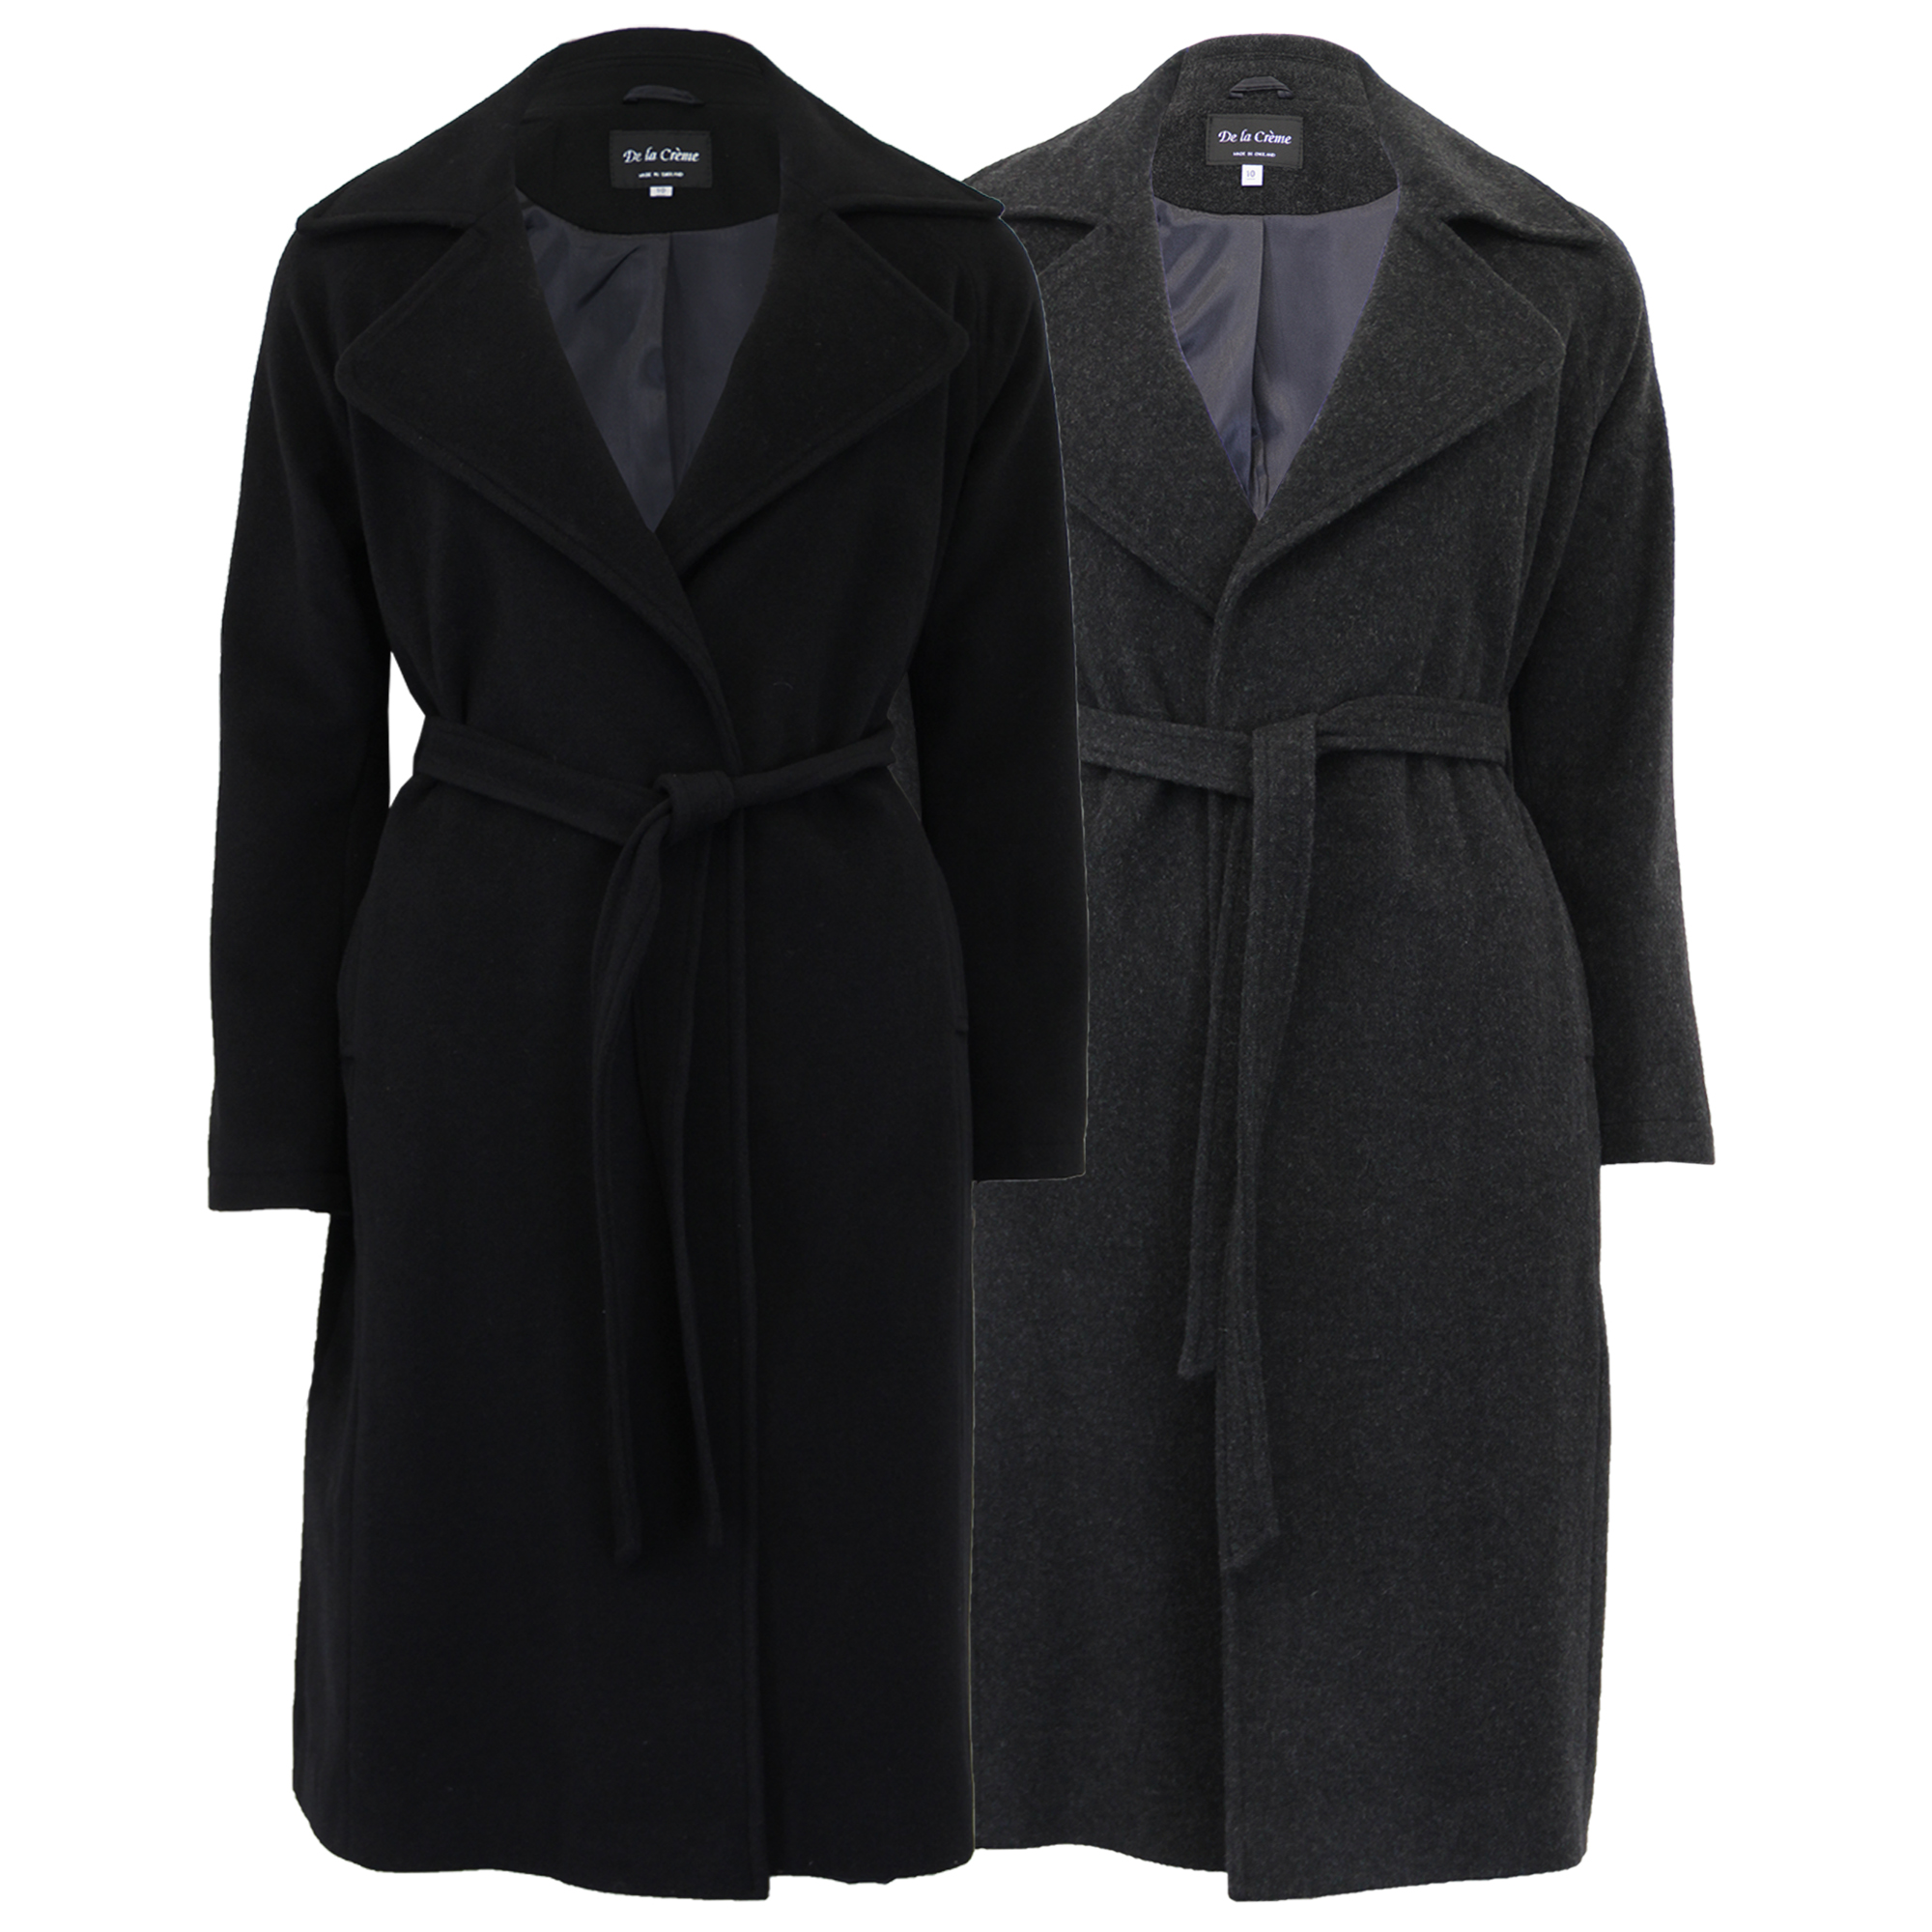 4daffef9554d4 Ladies Wool Cashmere Belted Coat Womens Long Jacket Trench Lined ...